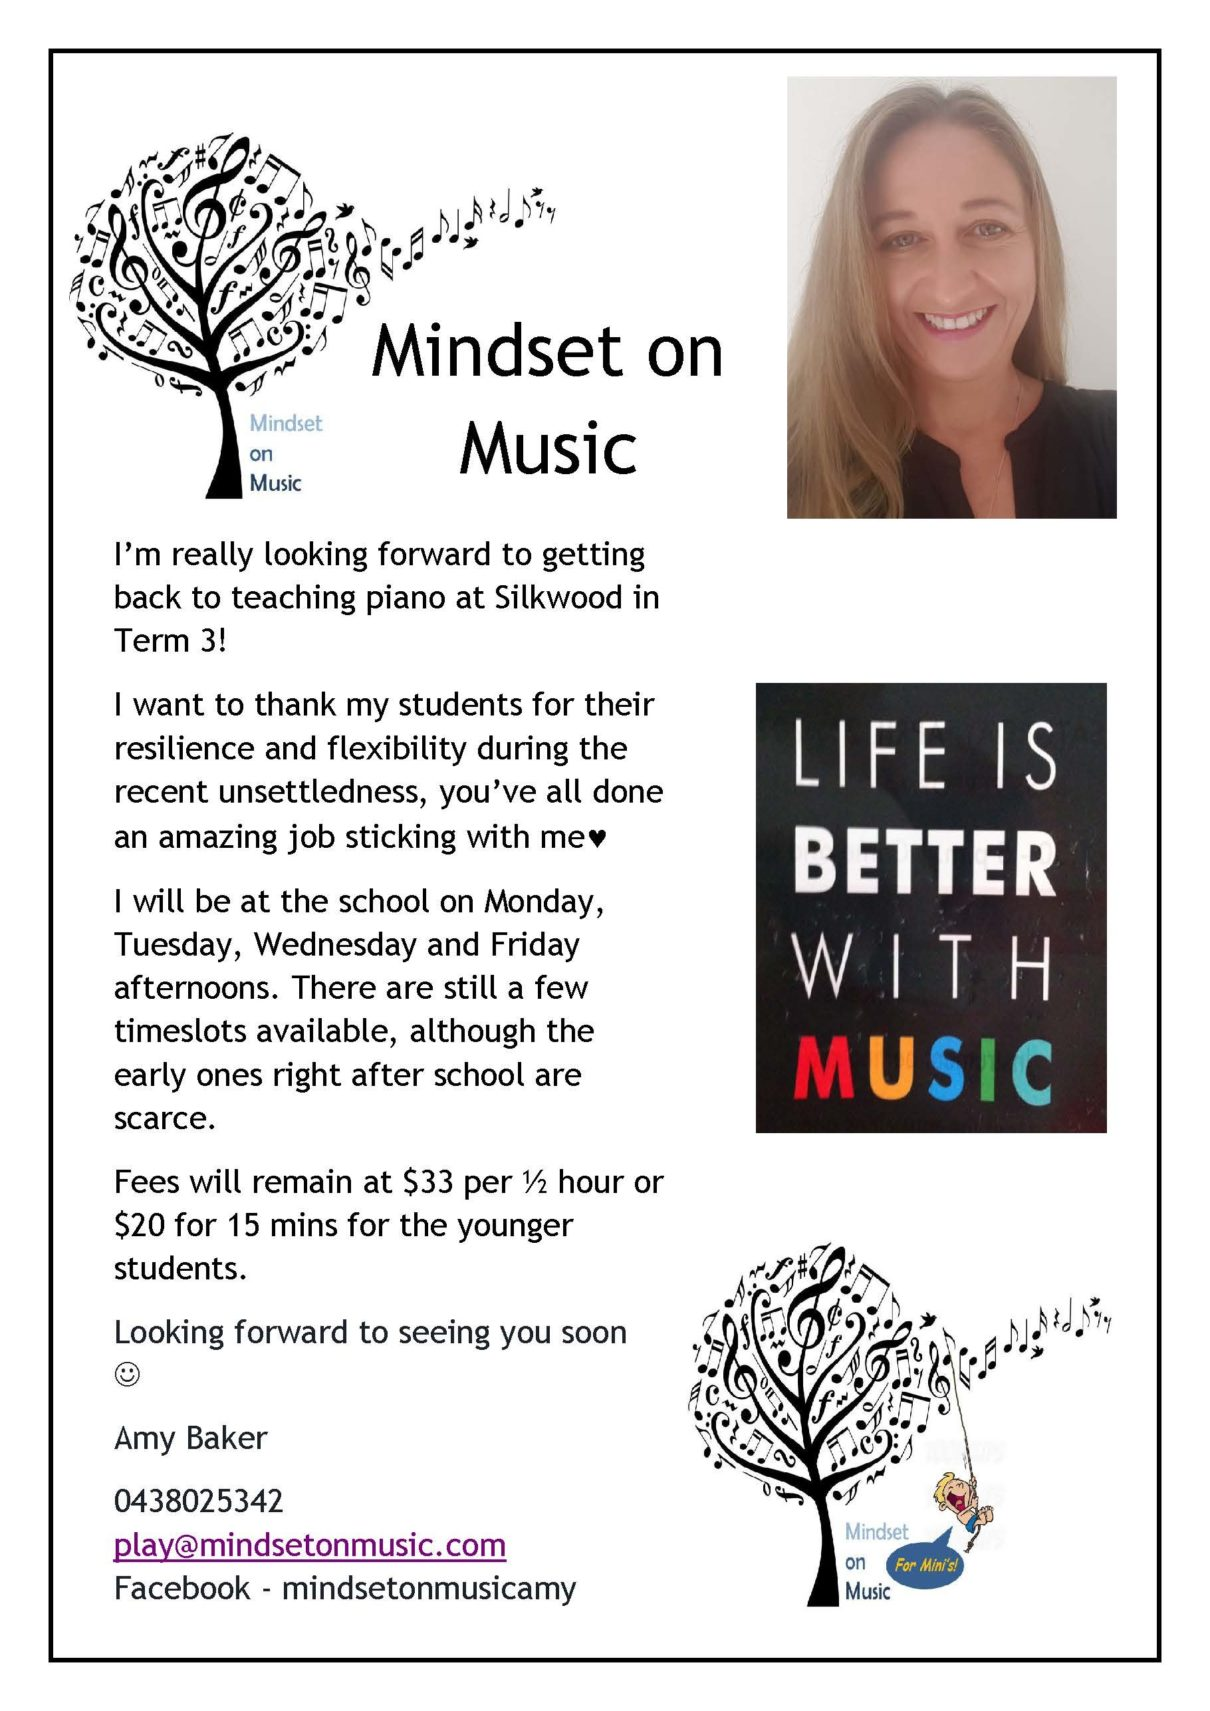 Mindset on Music - Silkwood School